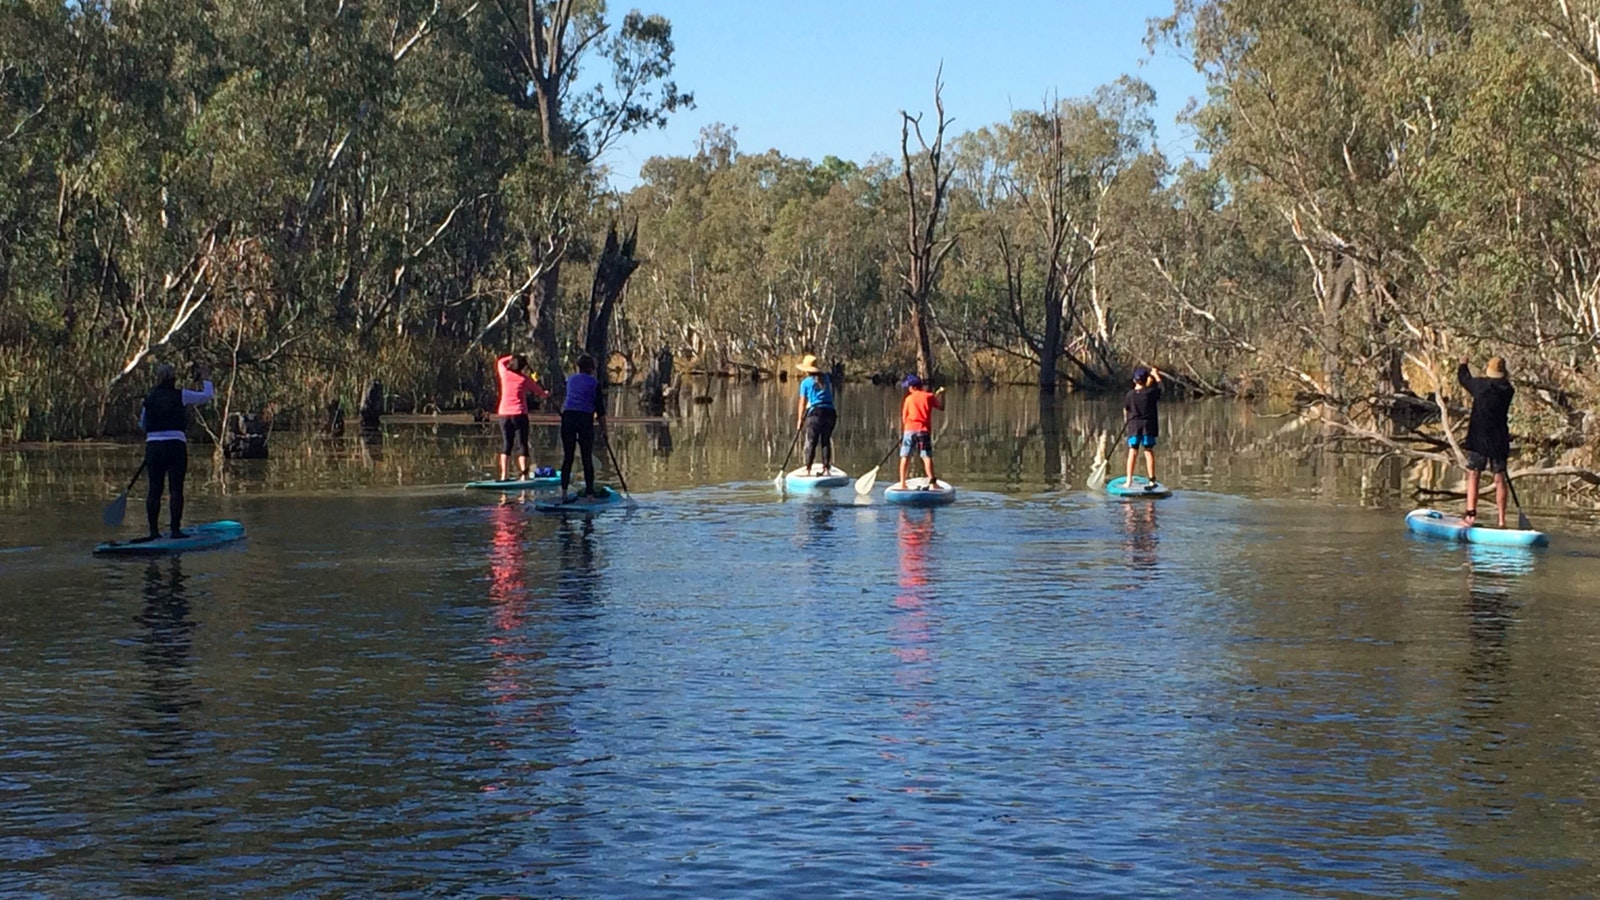 A family group spread out accross the creek in wetlands on the Gunbower Creek in Koondrook.